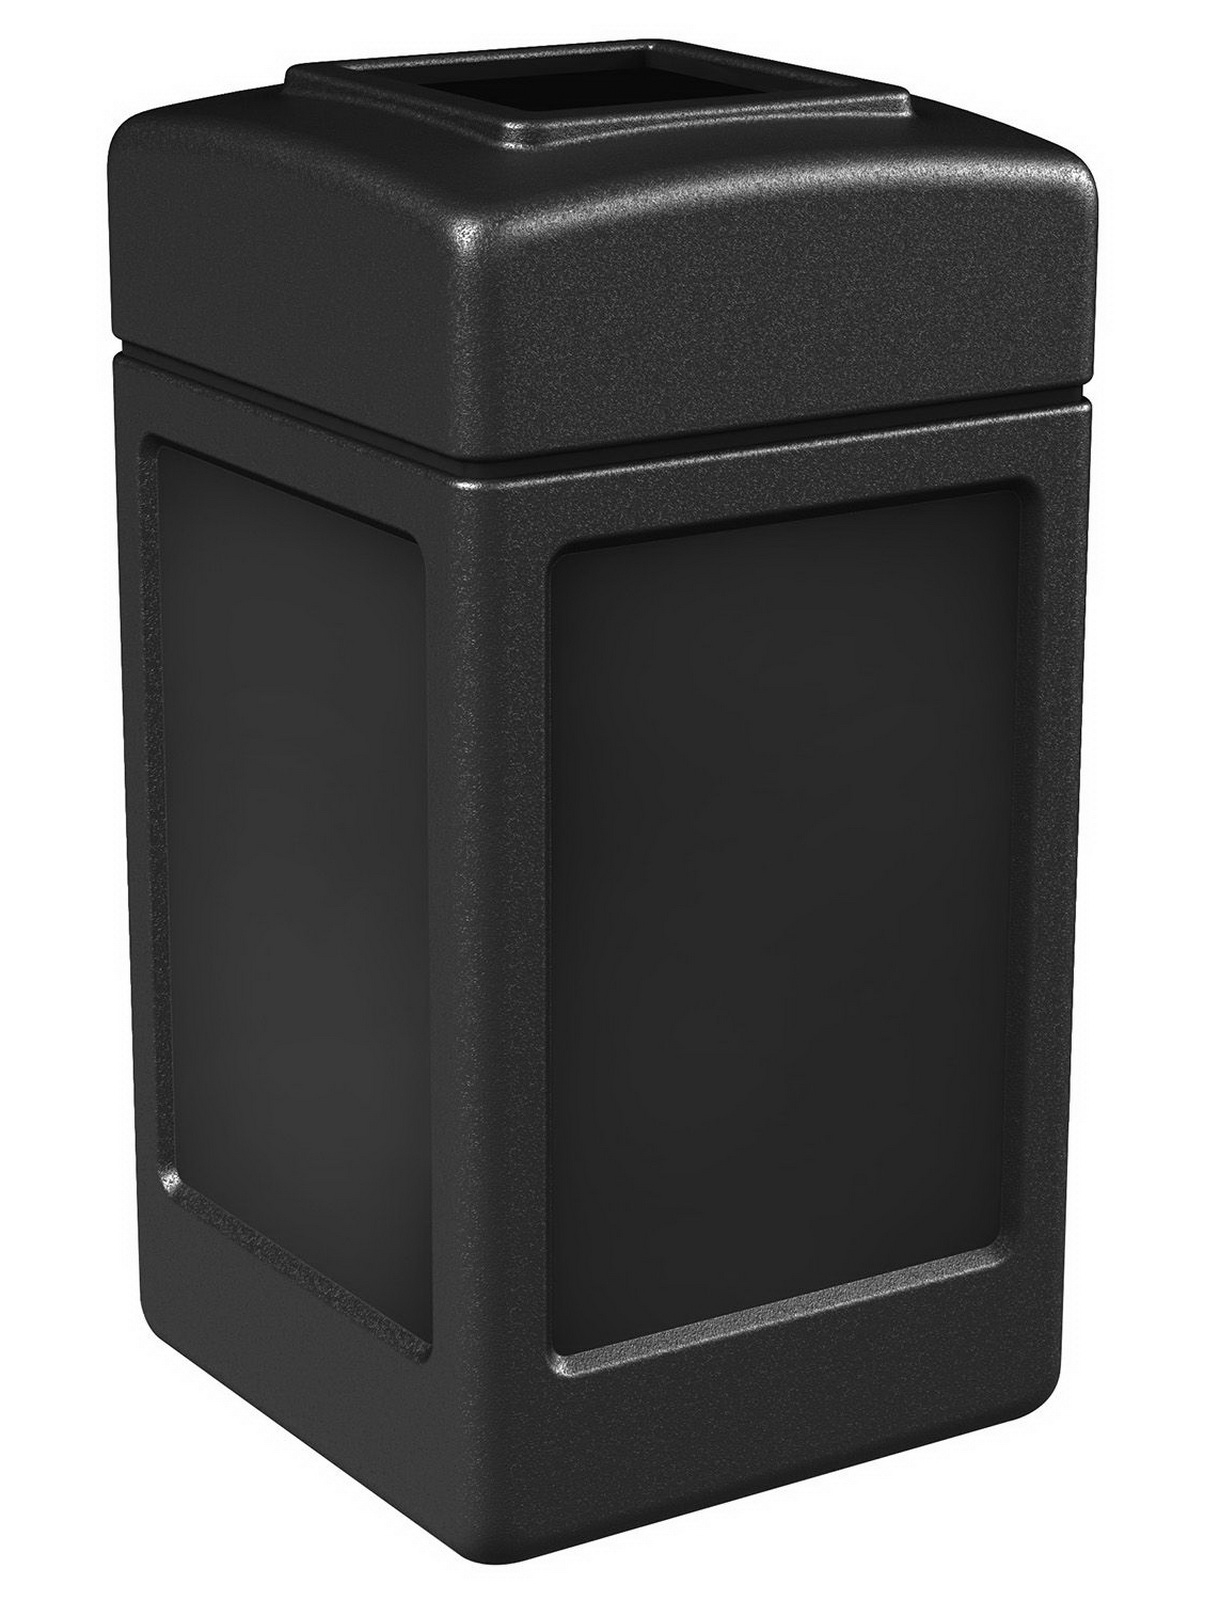 square trash can - Outdoor Trash Cans